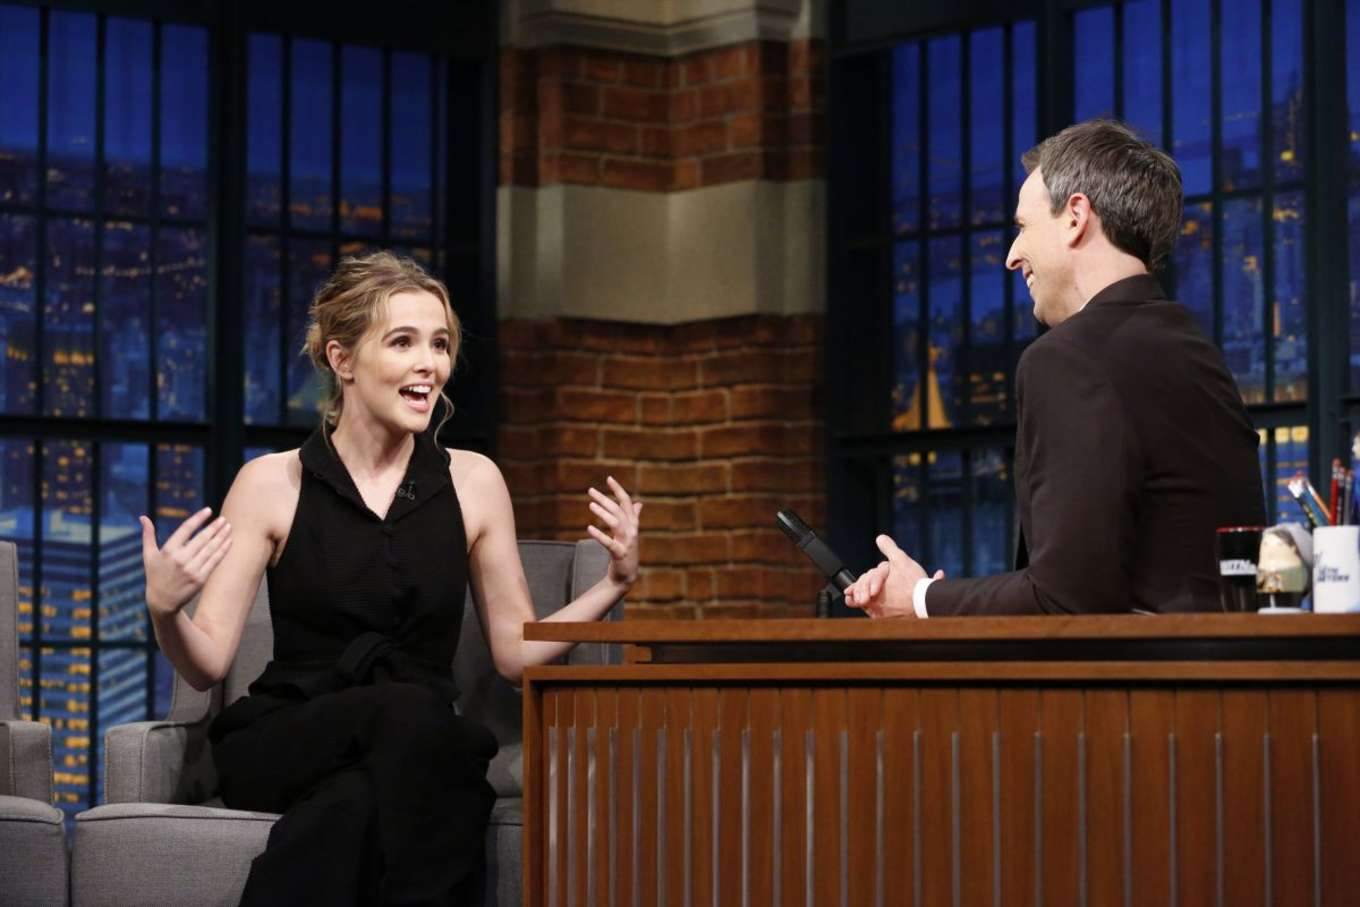 Zoey Deutch 2016 : Zoey Deutch on Late Night with Seth Meyers -03